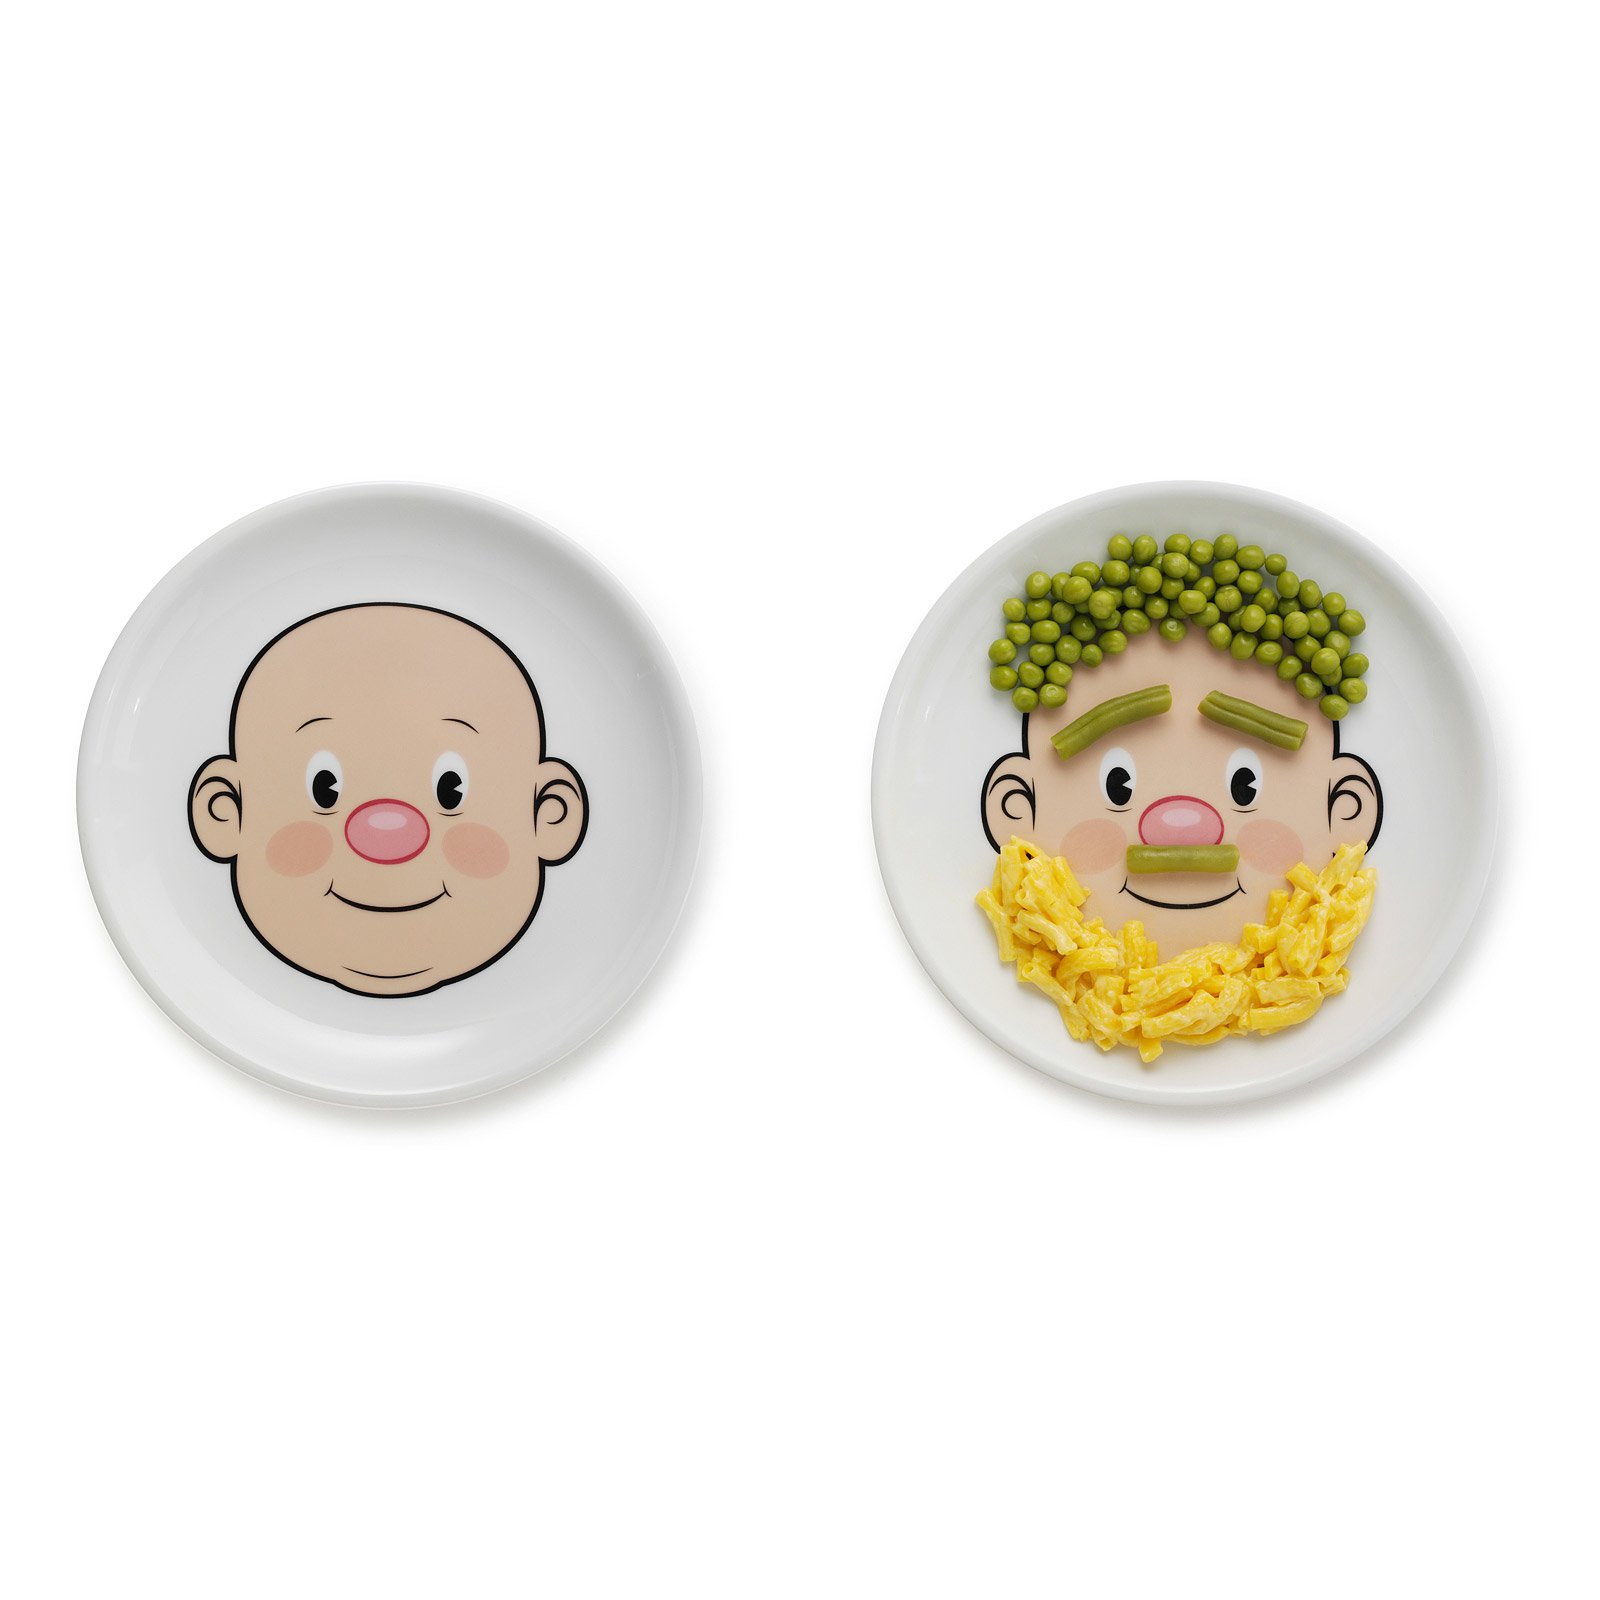 Mr. Food Face Plate | Fun Plate for Kids, Wooly Willy